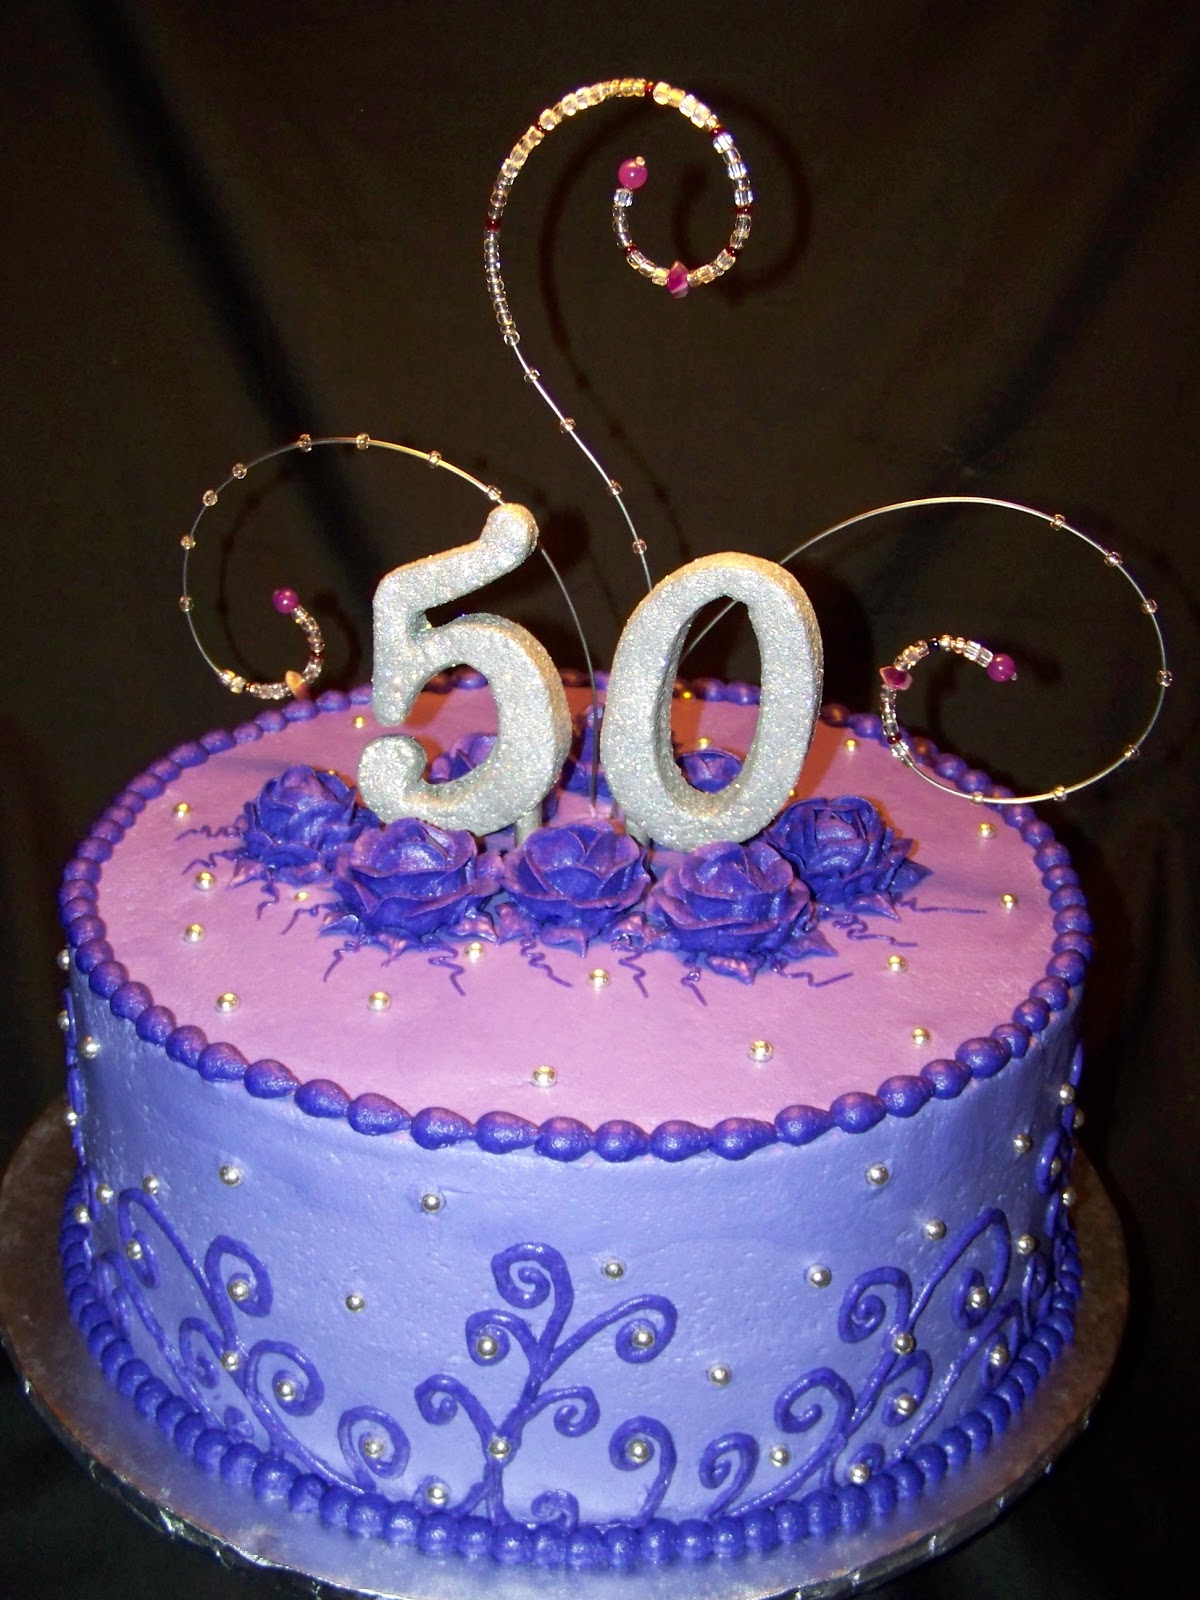 Cakes by Kristen H Purple and Bling 50th Birthday Cake